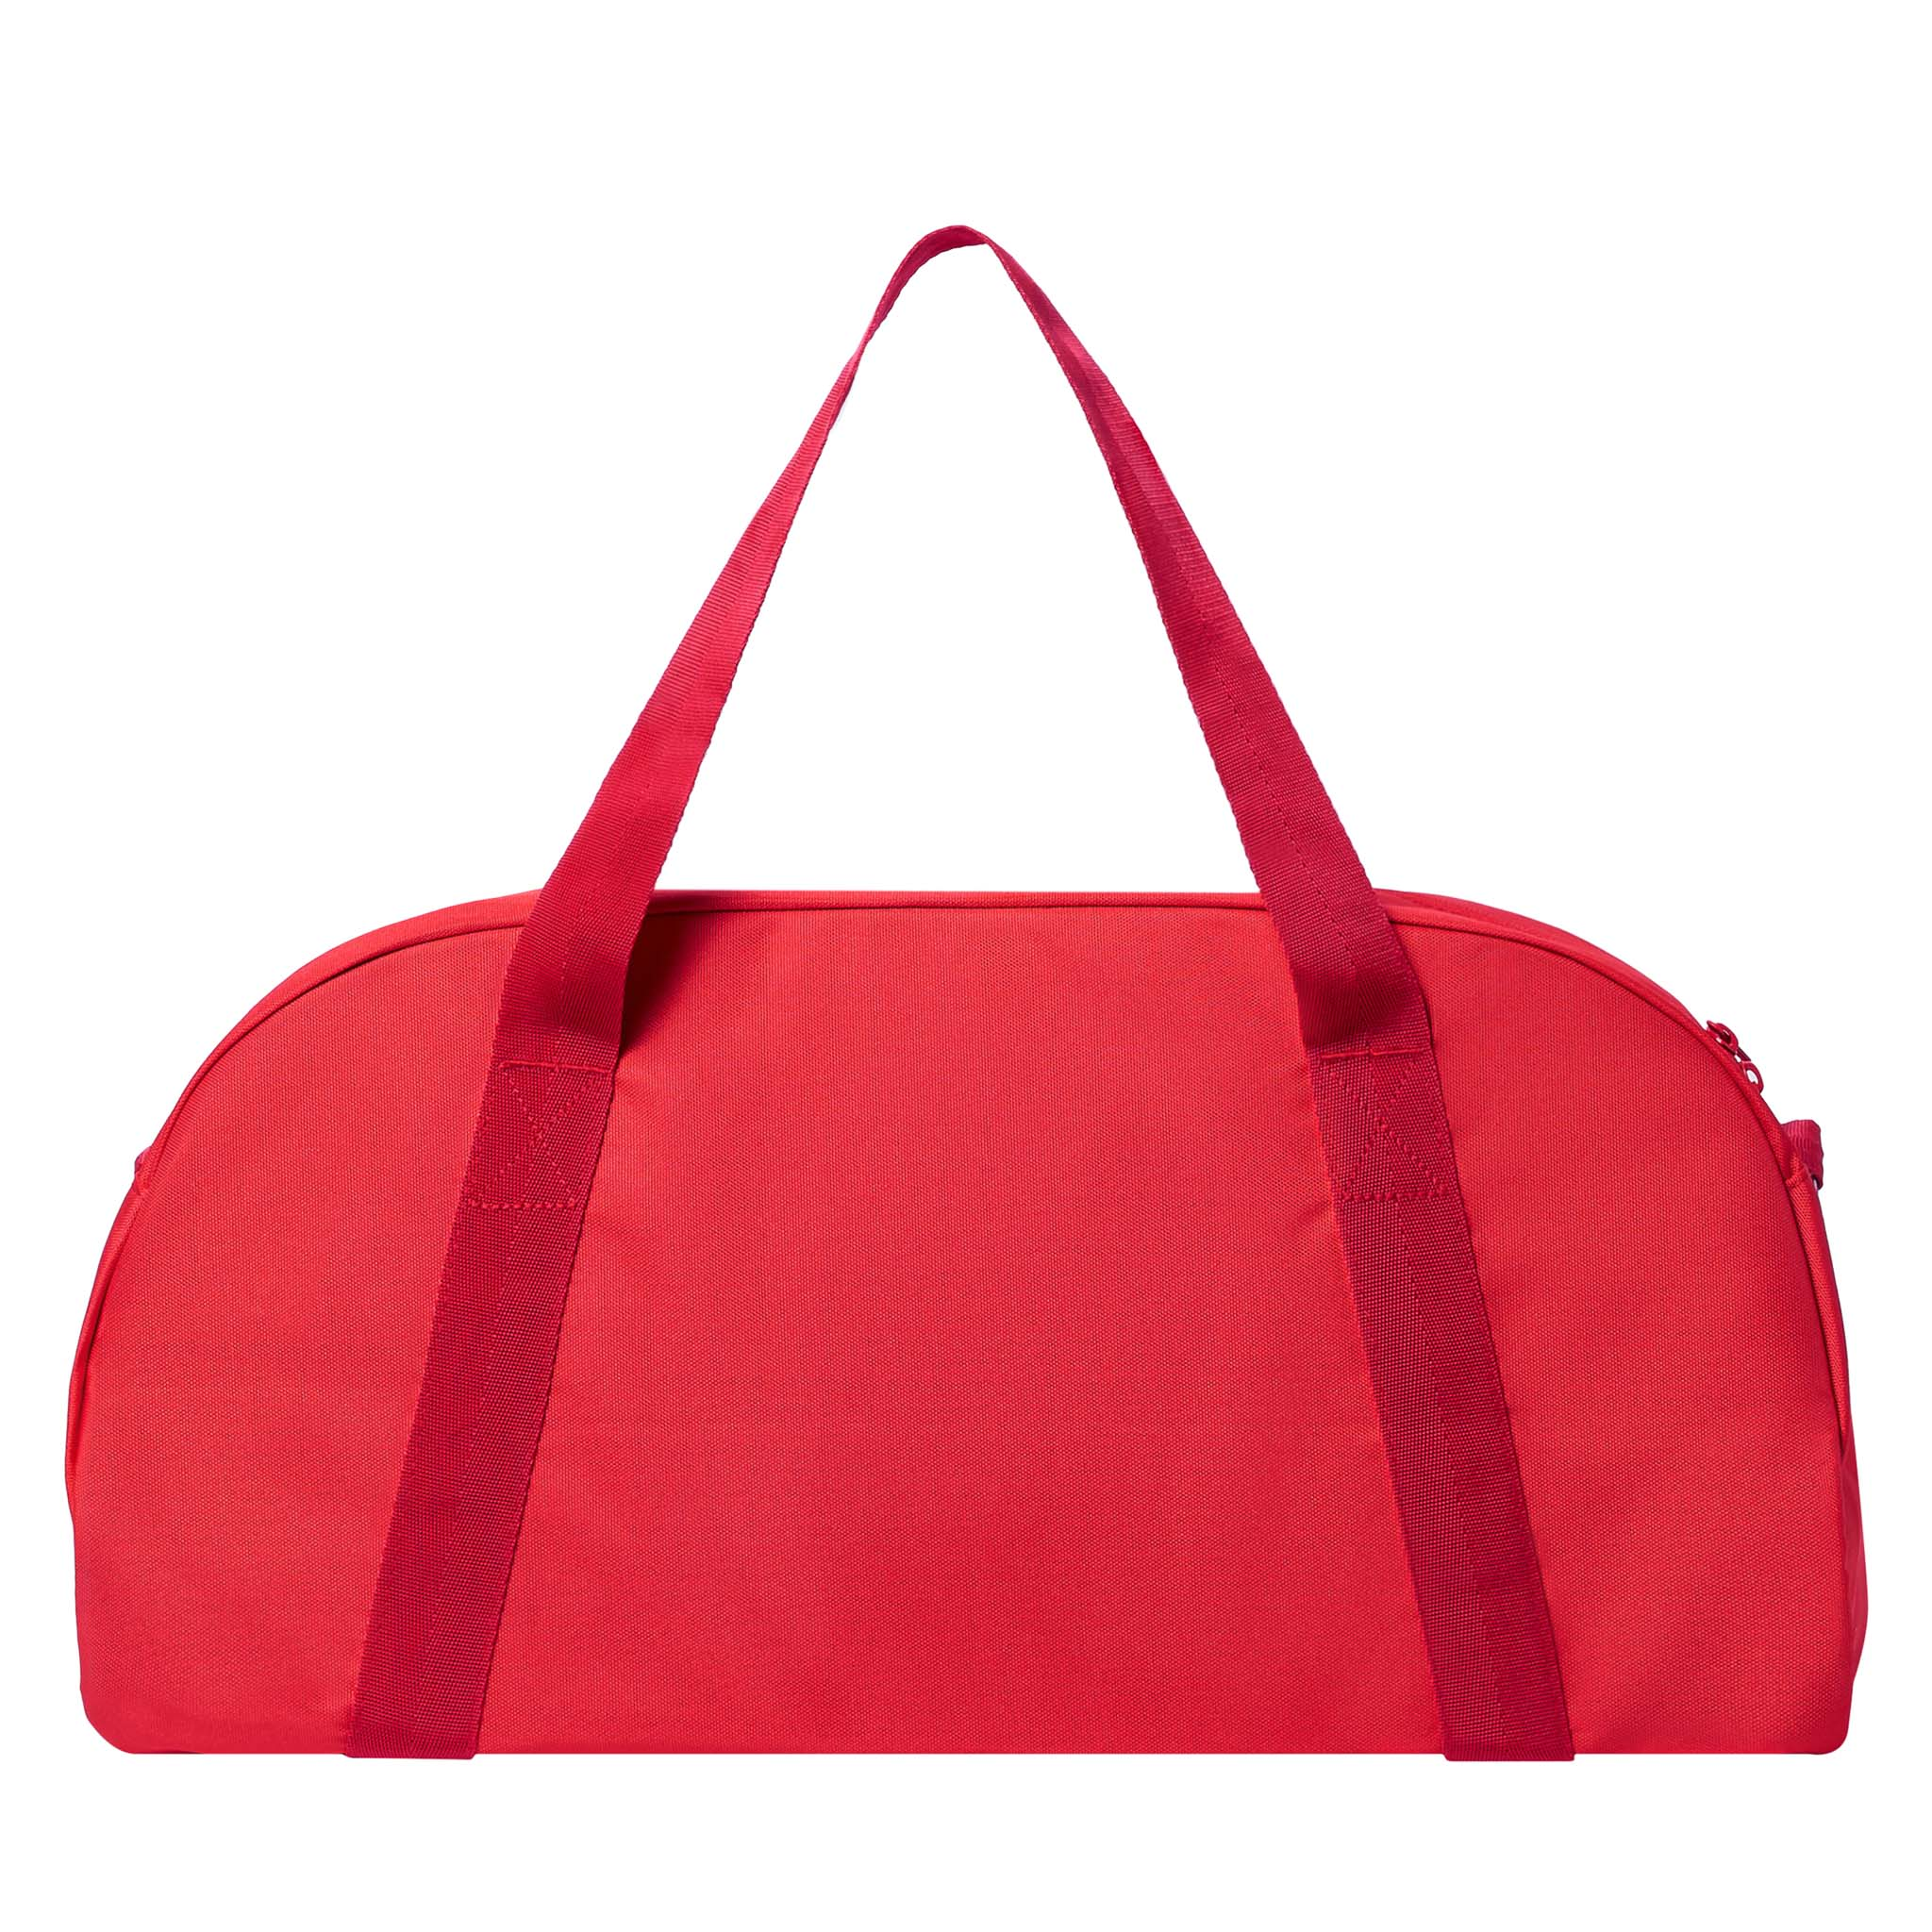 Academy crest Gym bag - ACADEMY RED